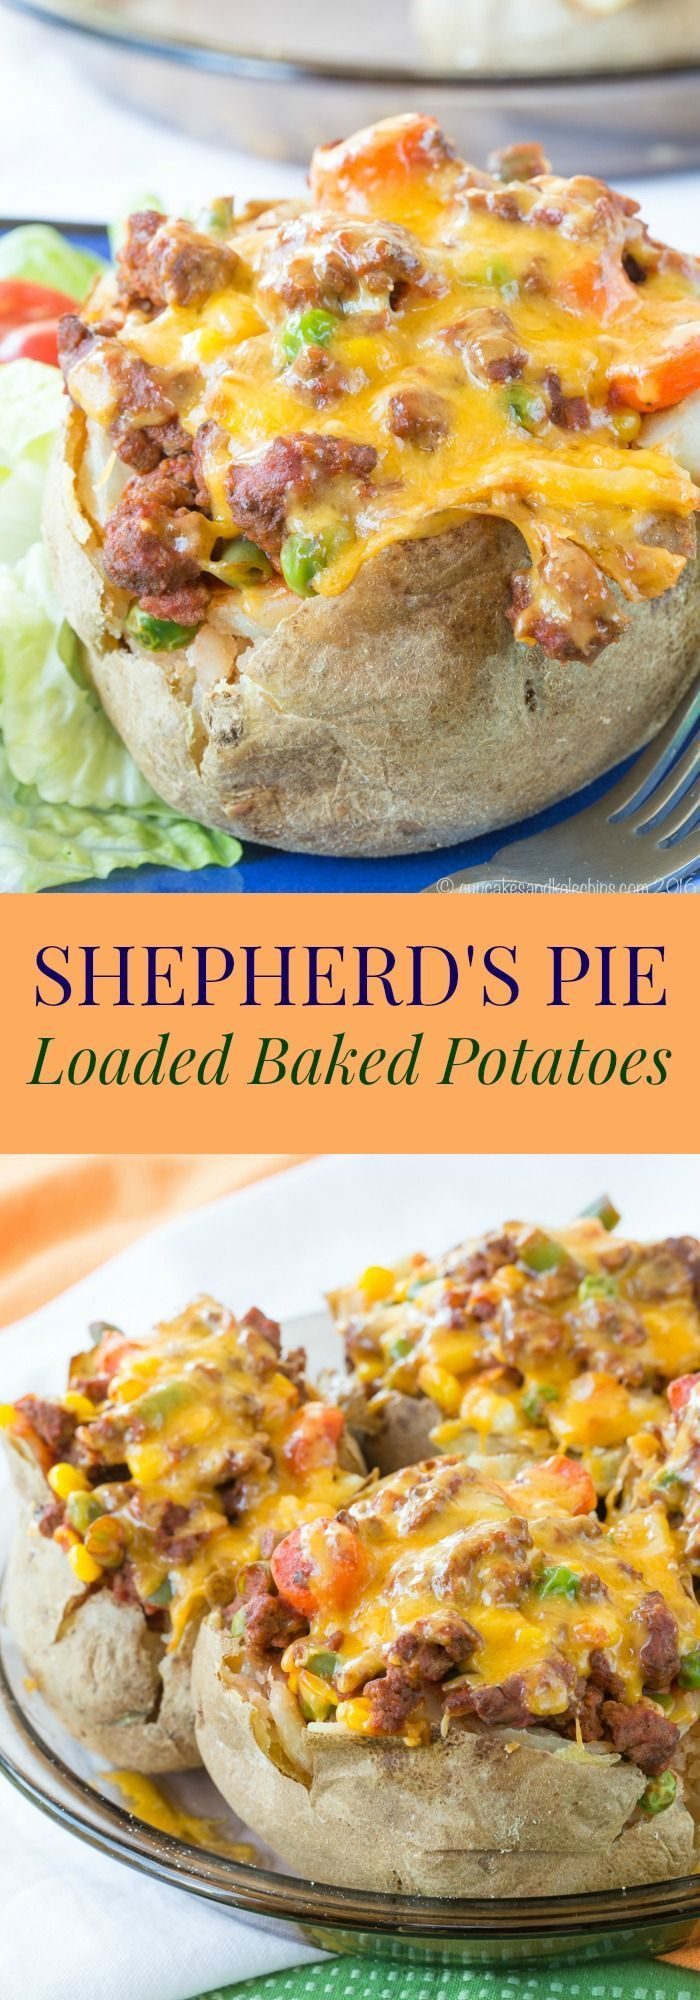 Shepherd's Pie Loaded Baked Potatoes - a fun and easy twist on a classic recipe with a simple beef and vegetable filling for stuffed baked potatoes. | cupcakesandkalech... | gluten free